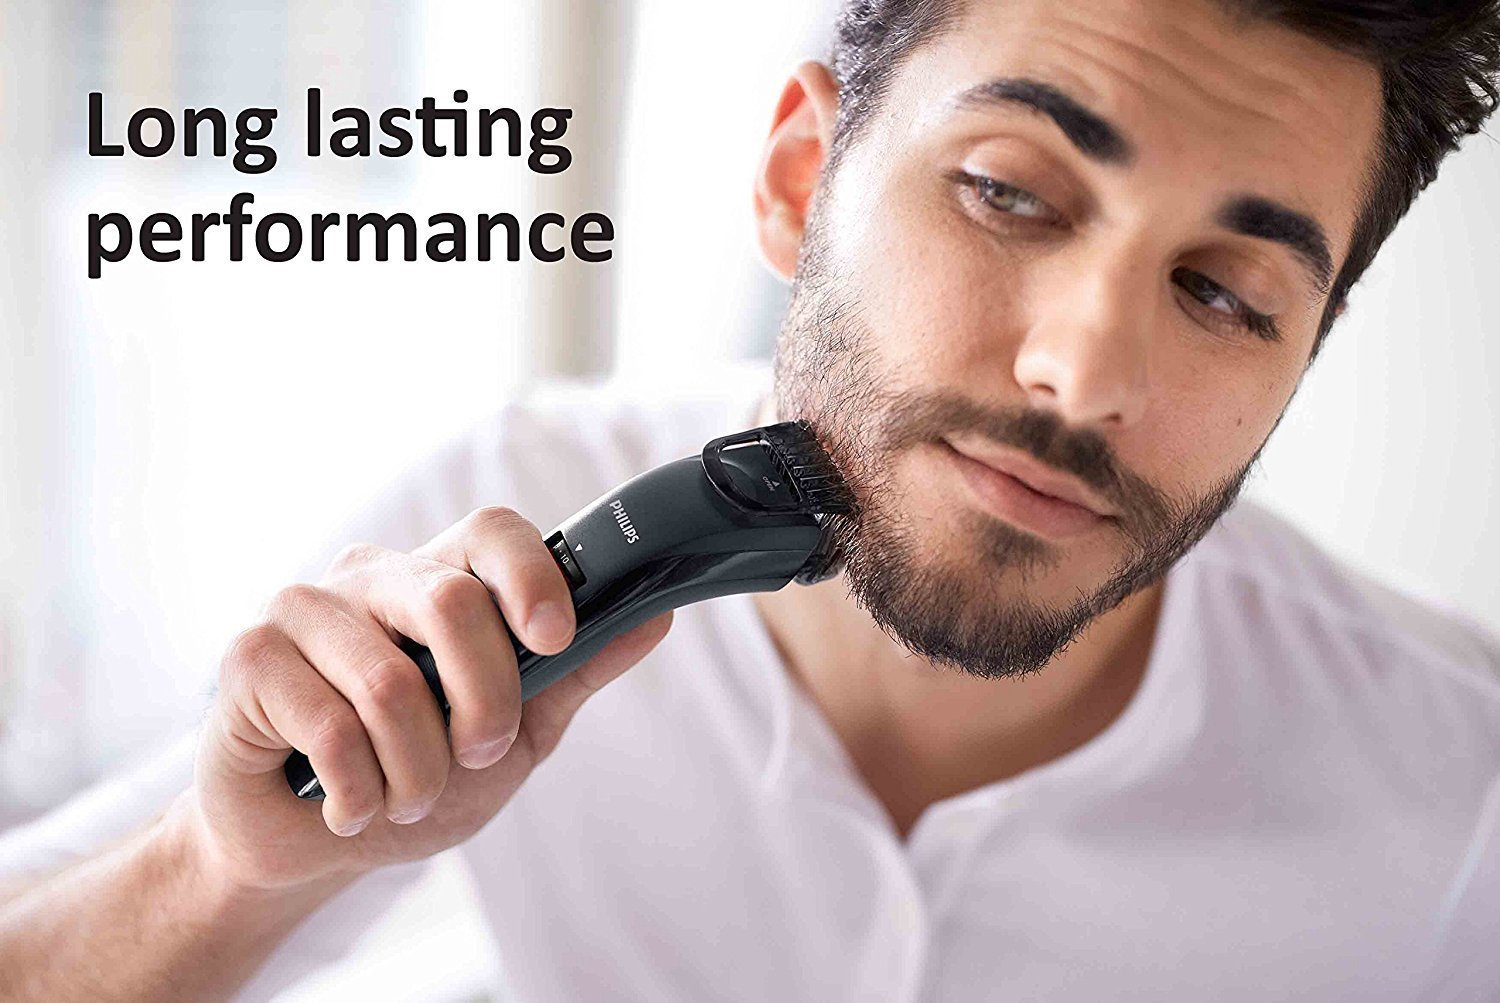 Philips Beard Trimmer Cordless For Men Price Buy Mens Electrical Wall Outlet Wiring Newhairstylesformen2014com Online At Best In India